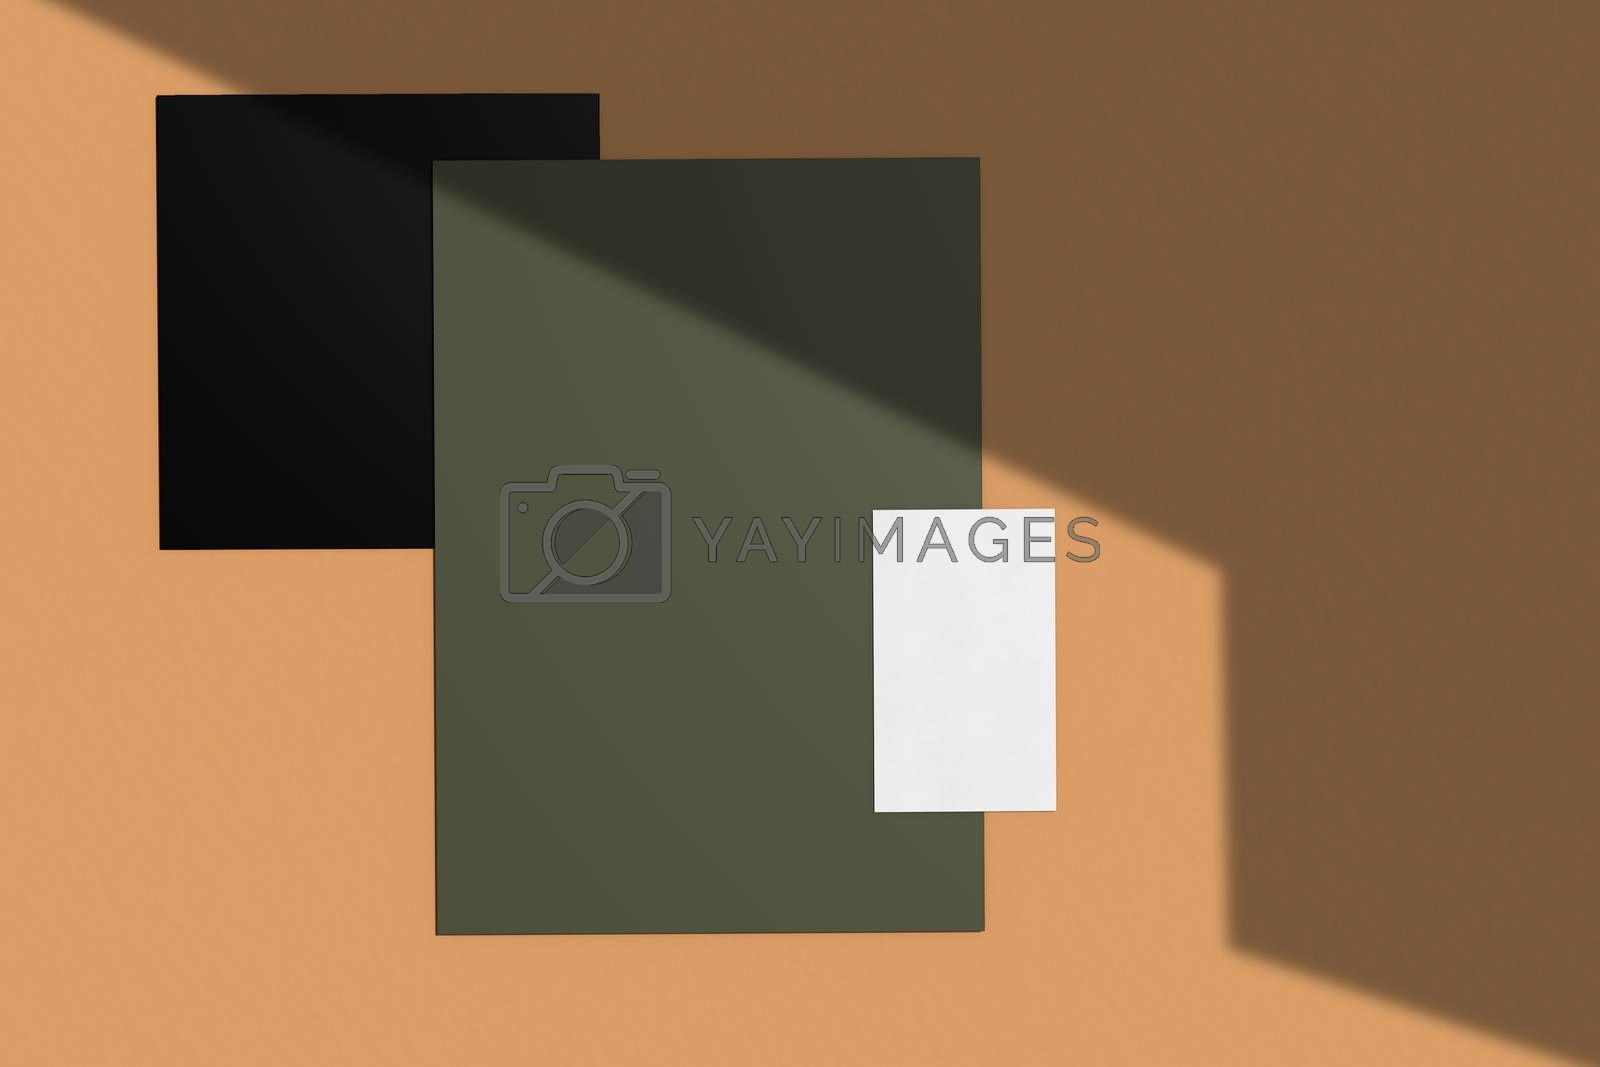 Branding identity mockup of blank business name card and paper natural lighting overlay shadows, minimal layout style